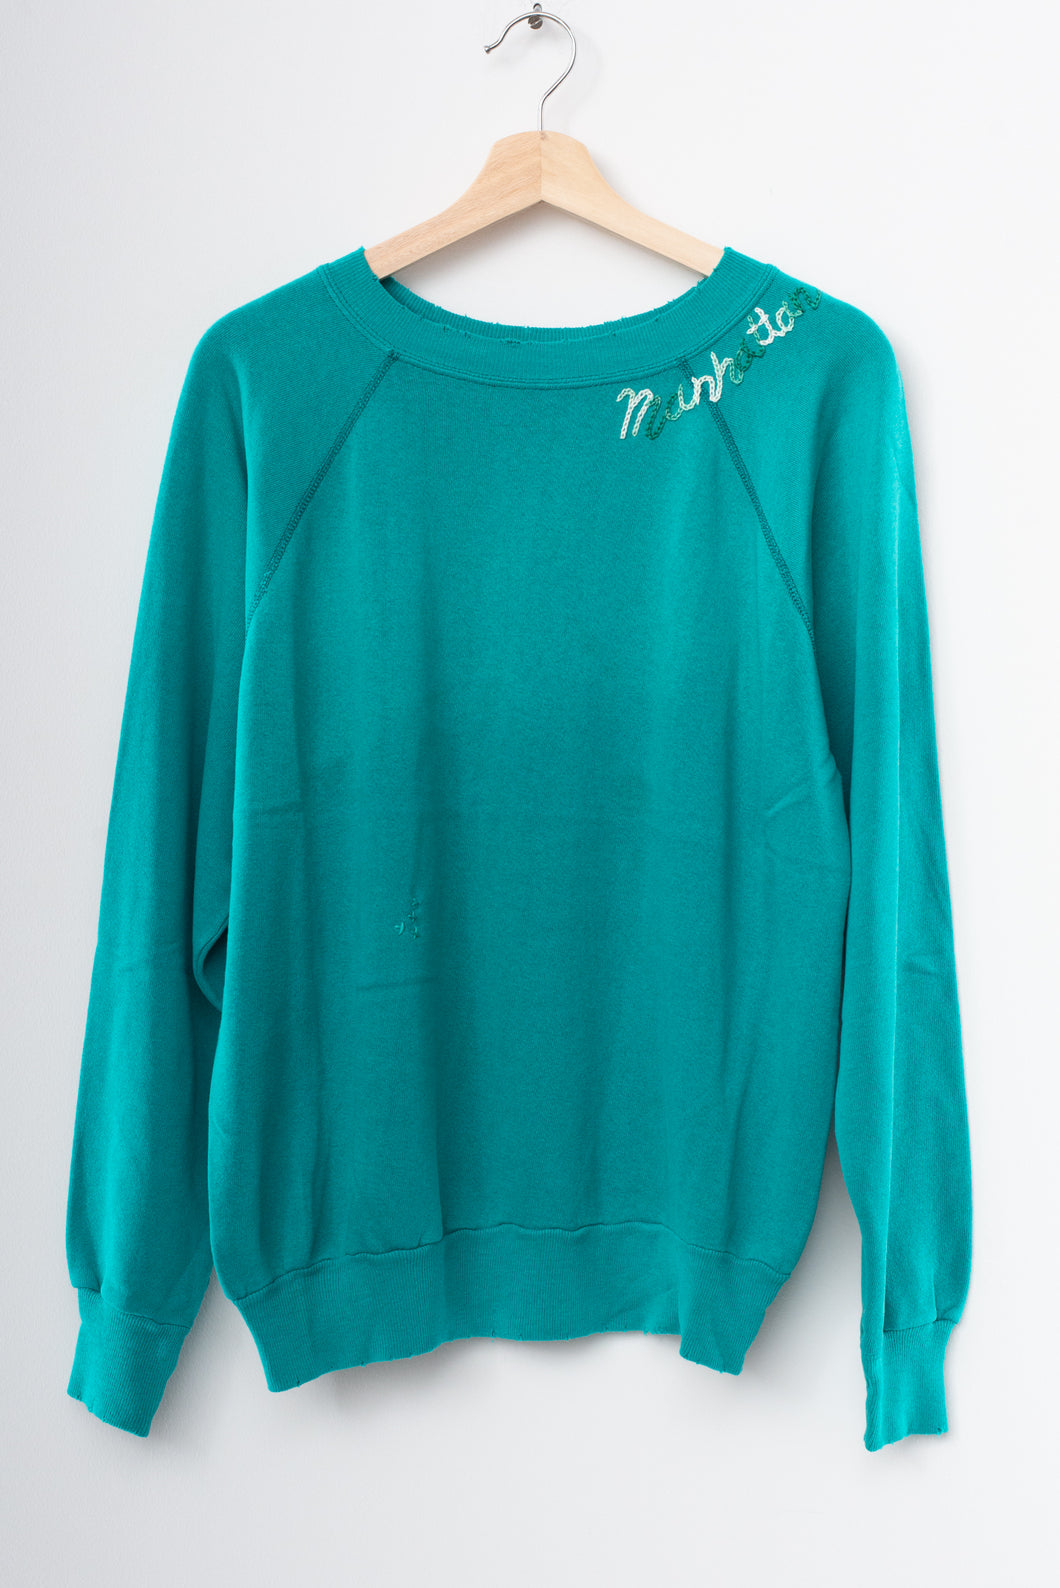 Manhattan Beach Sweatshirt-Teal-M/L